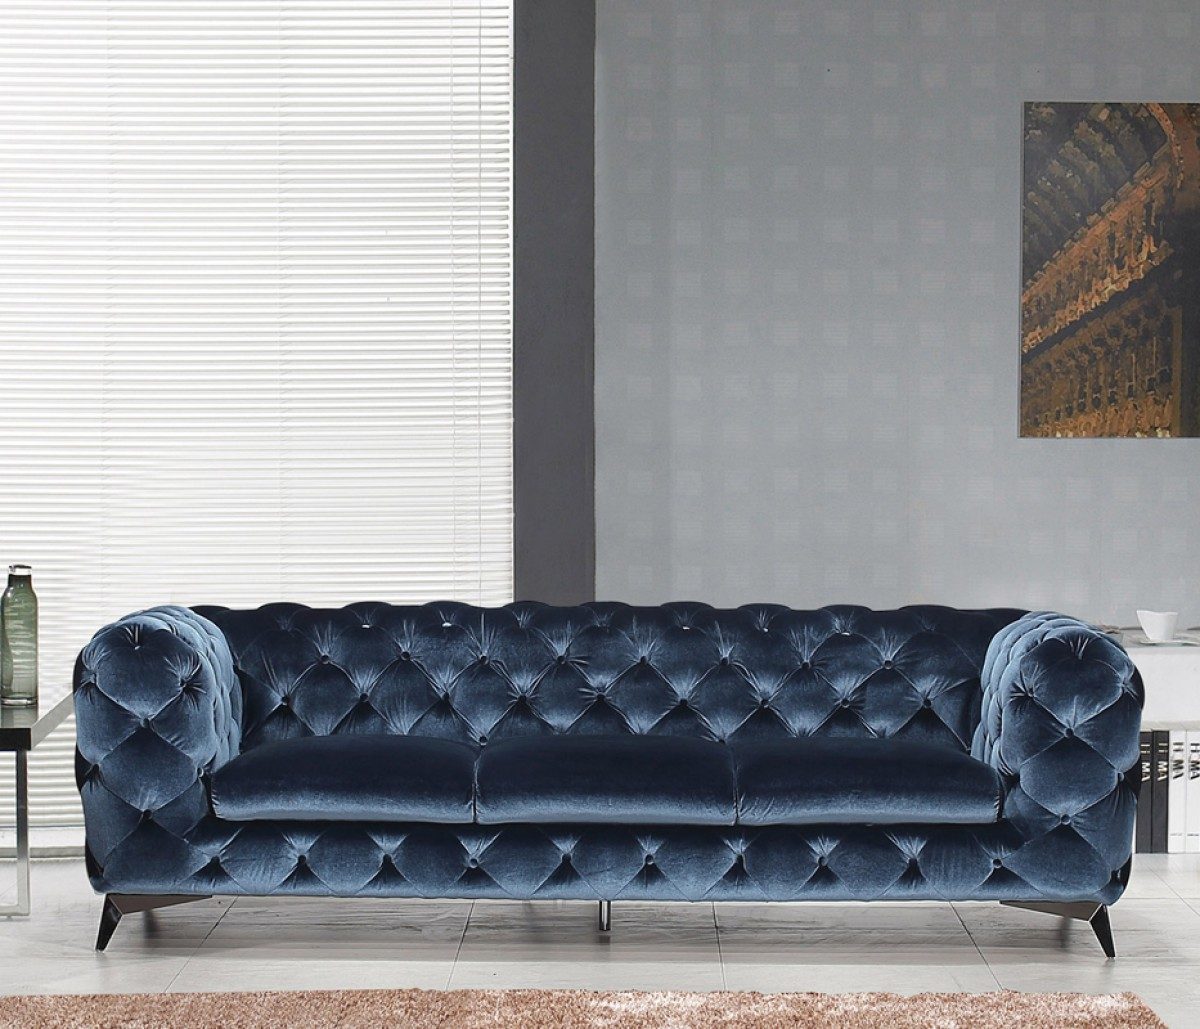 carlone-sofa-in-blue.jpg